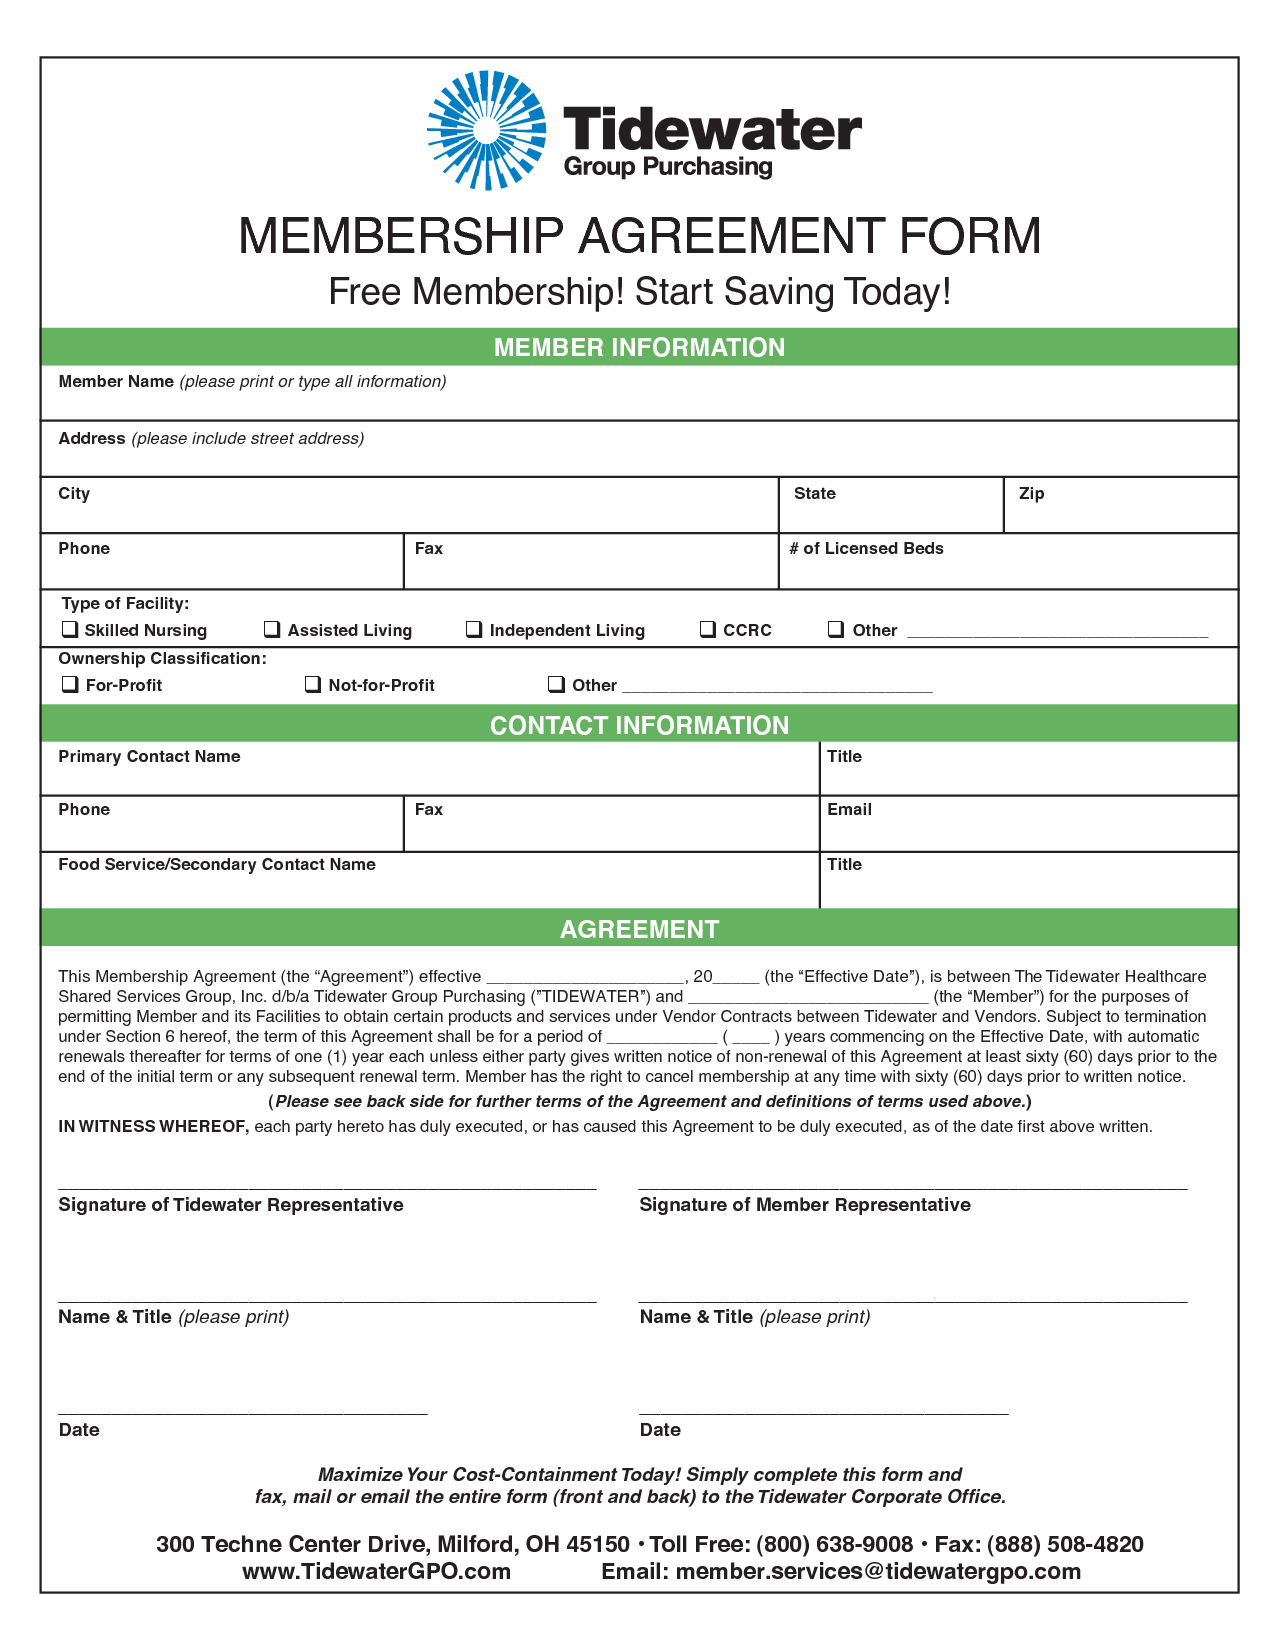 Membership Agreement Template   Invitation Templates   Membership Agreement  Sample  Membership Forms Templates